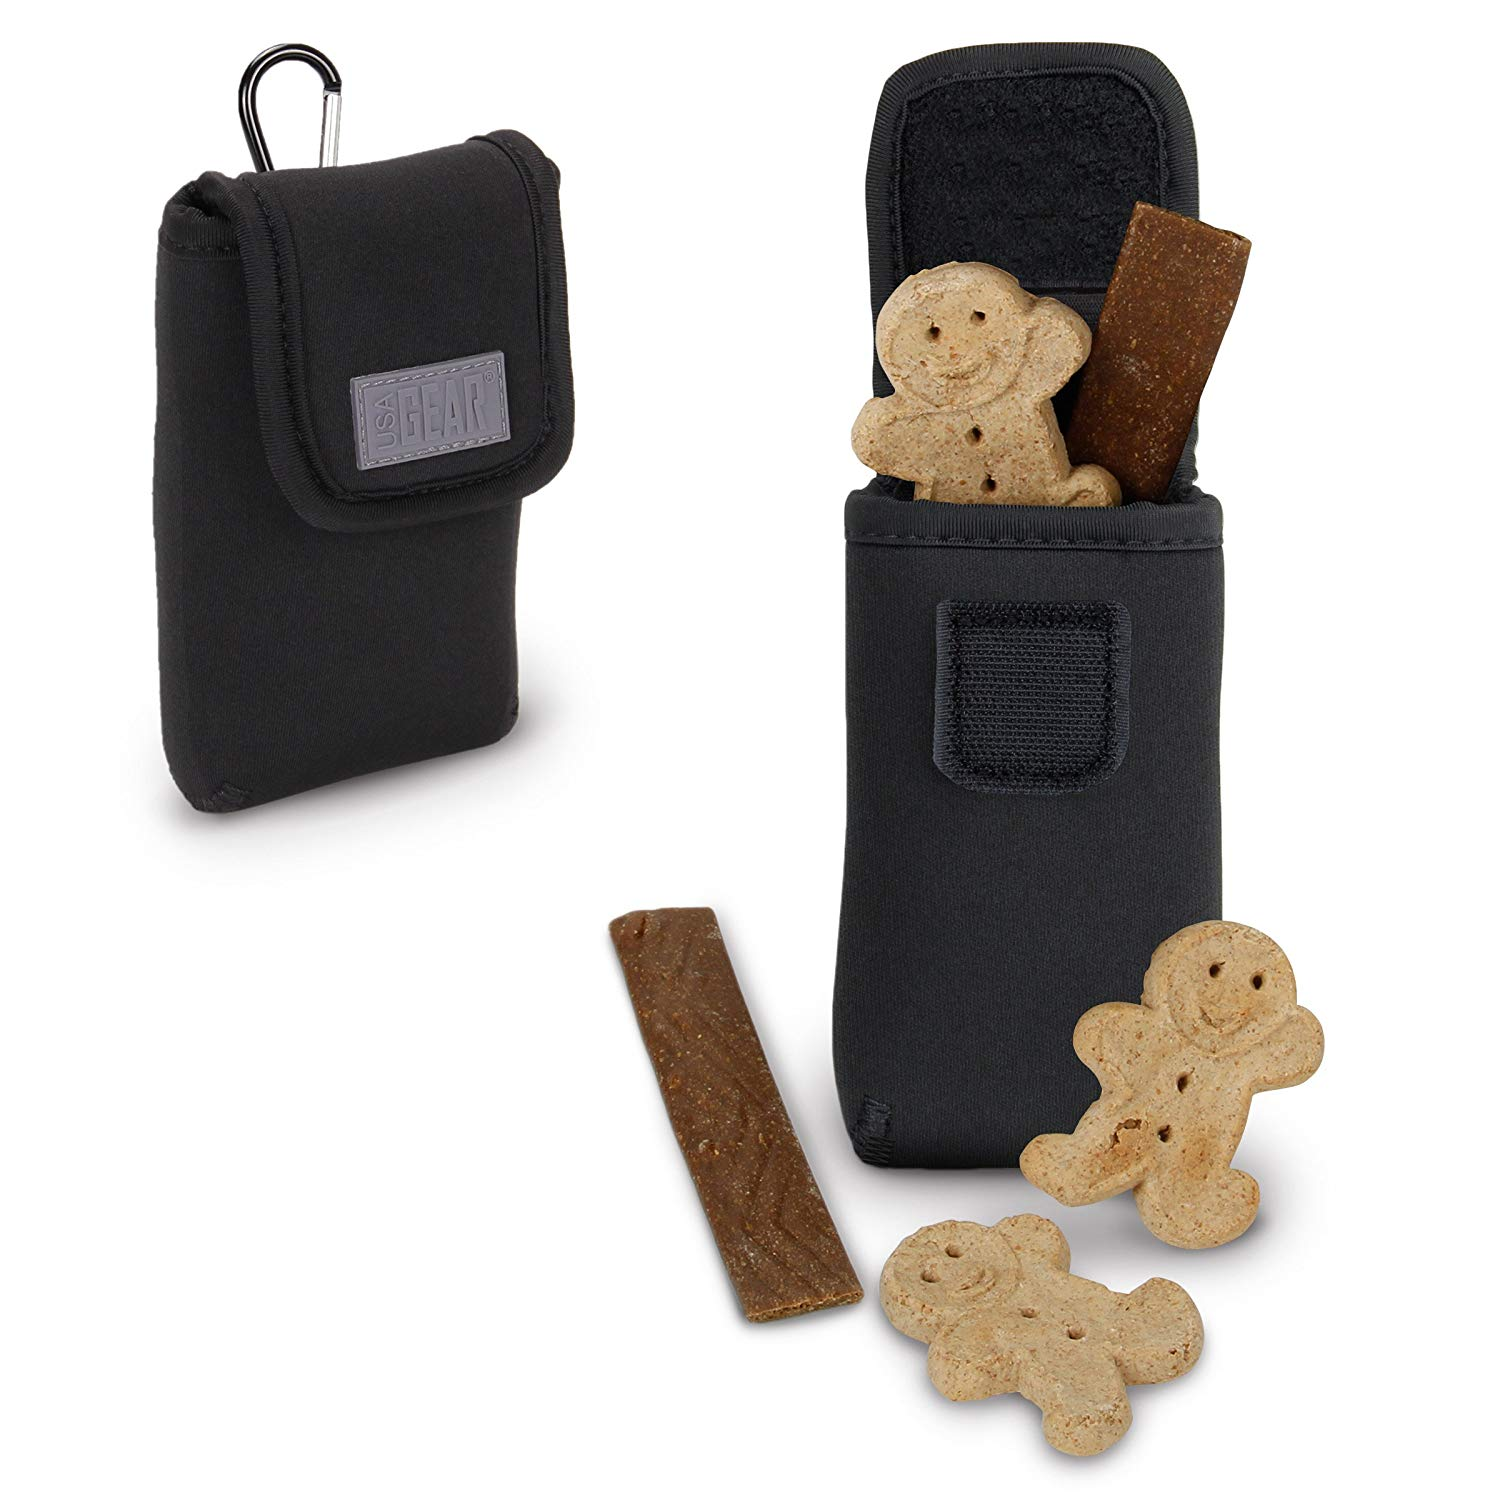 6e60869466 Get Quotations · USA Gear Dog Treat Carrying Pouch   Puppy Training Snack  Bag Holder with Reinforced Belt Loop